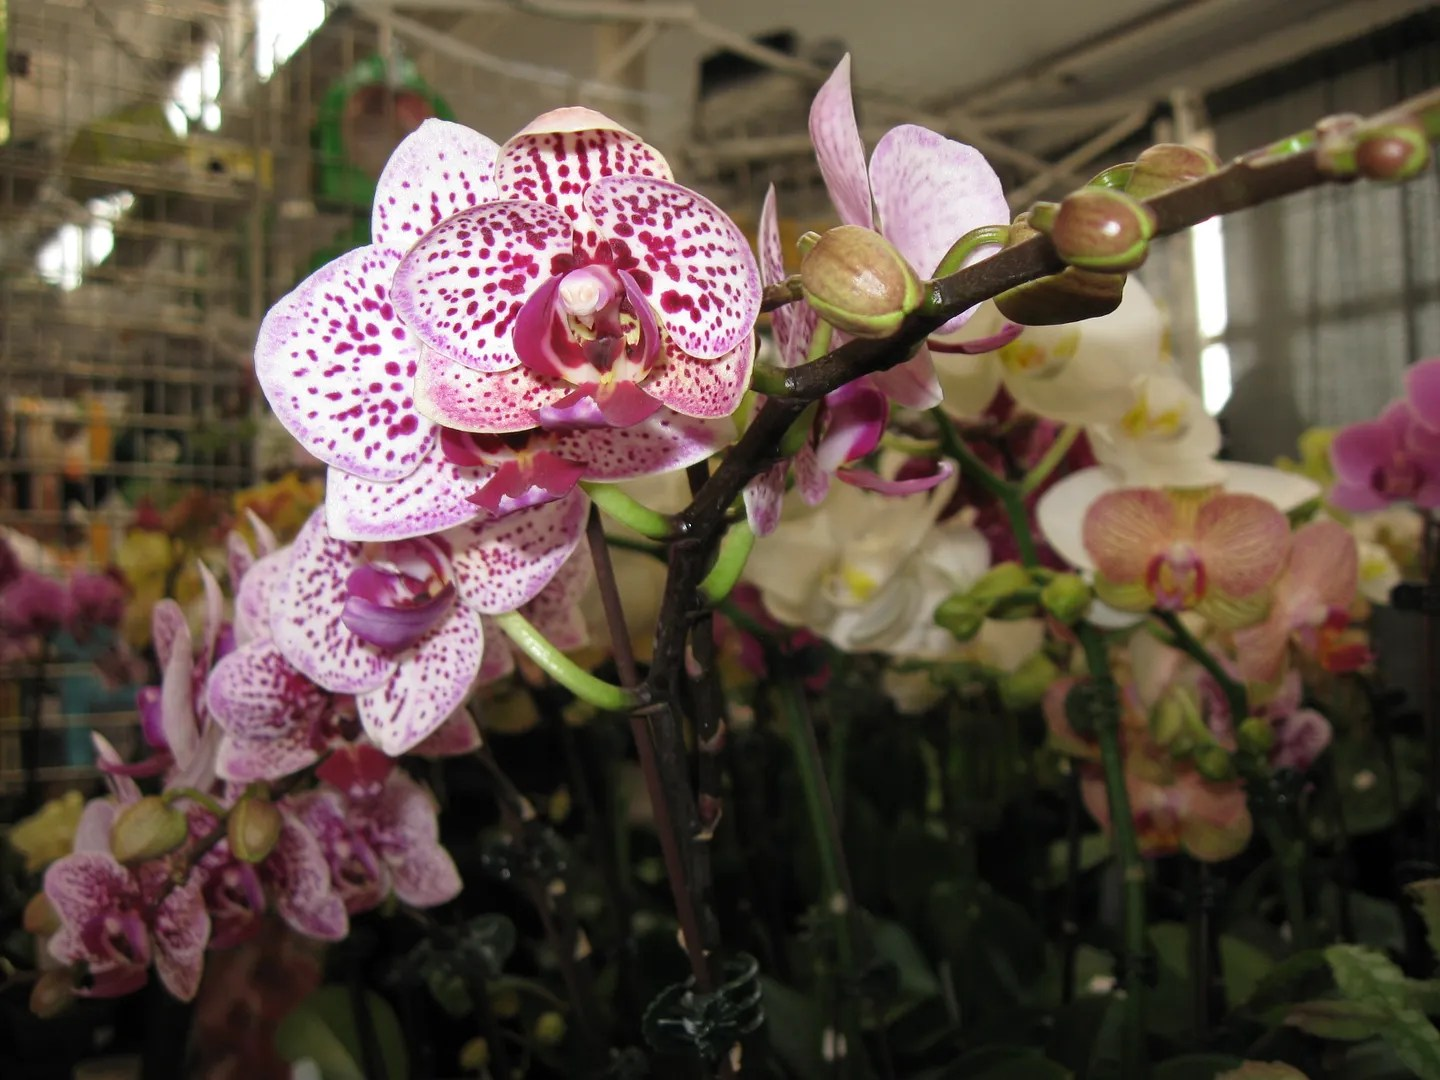 speckled flower, Indiana Flower and Patio Show, Indianapolis